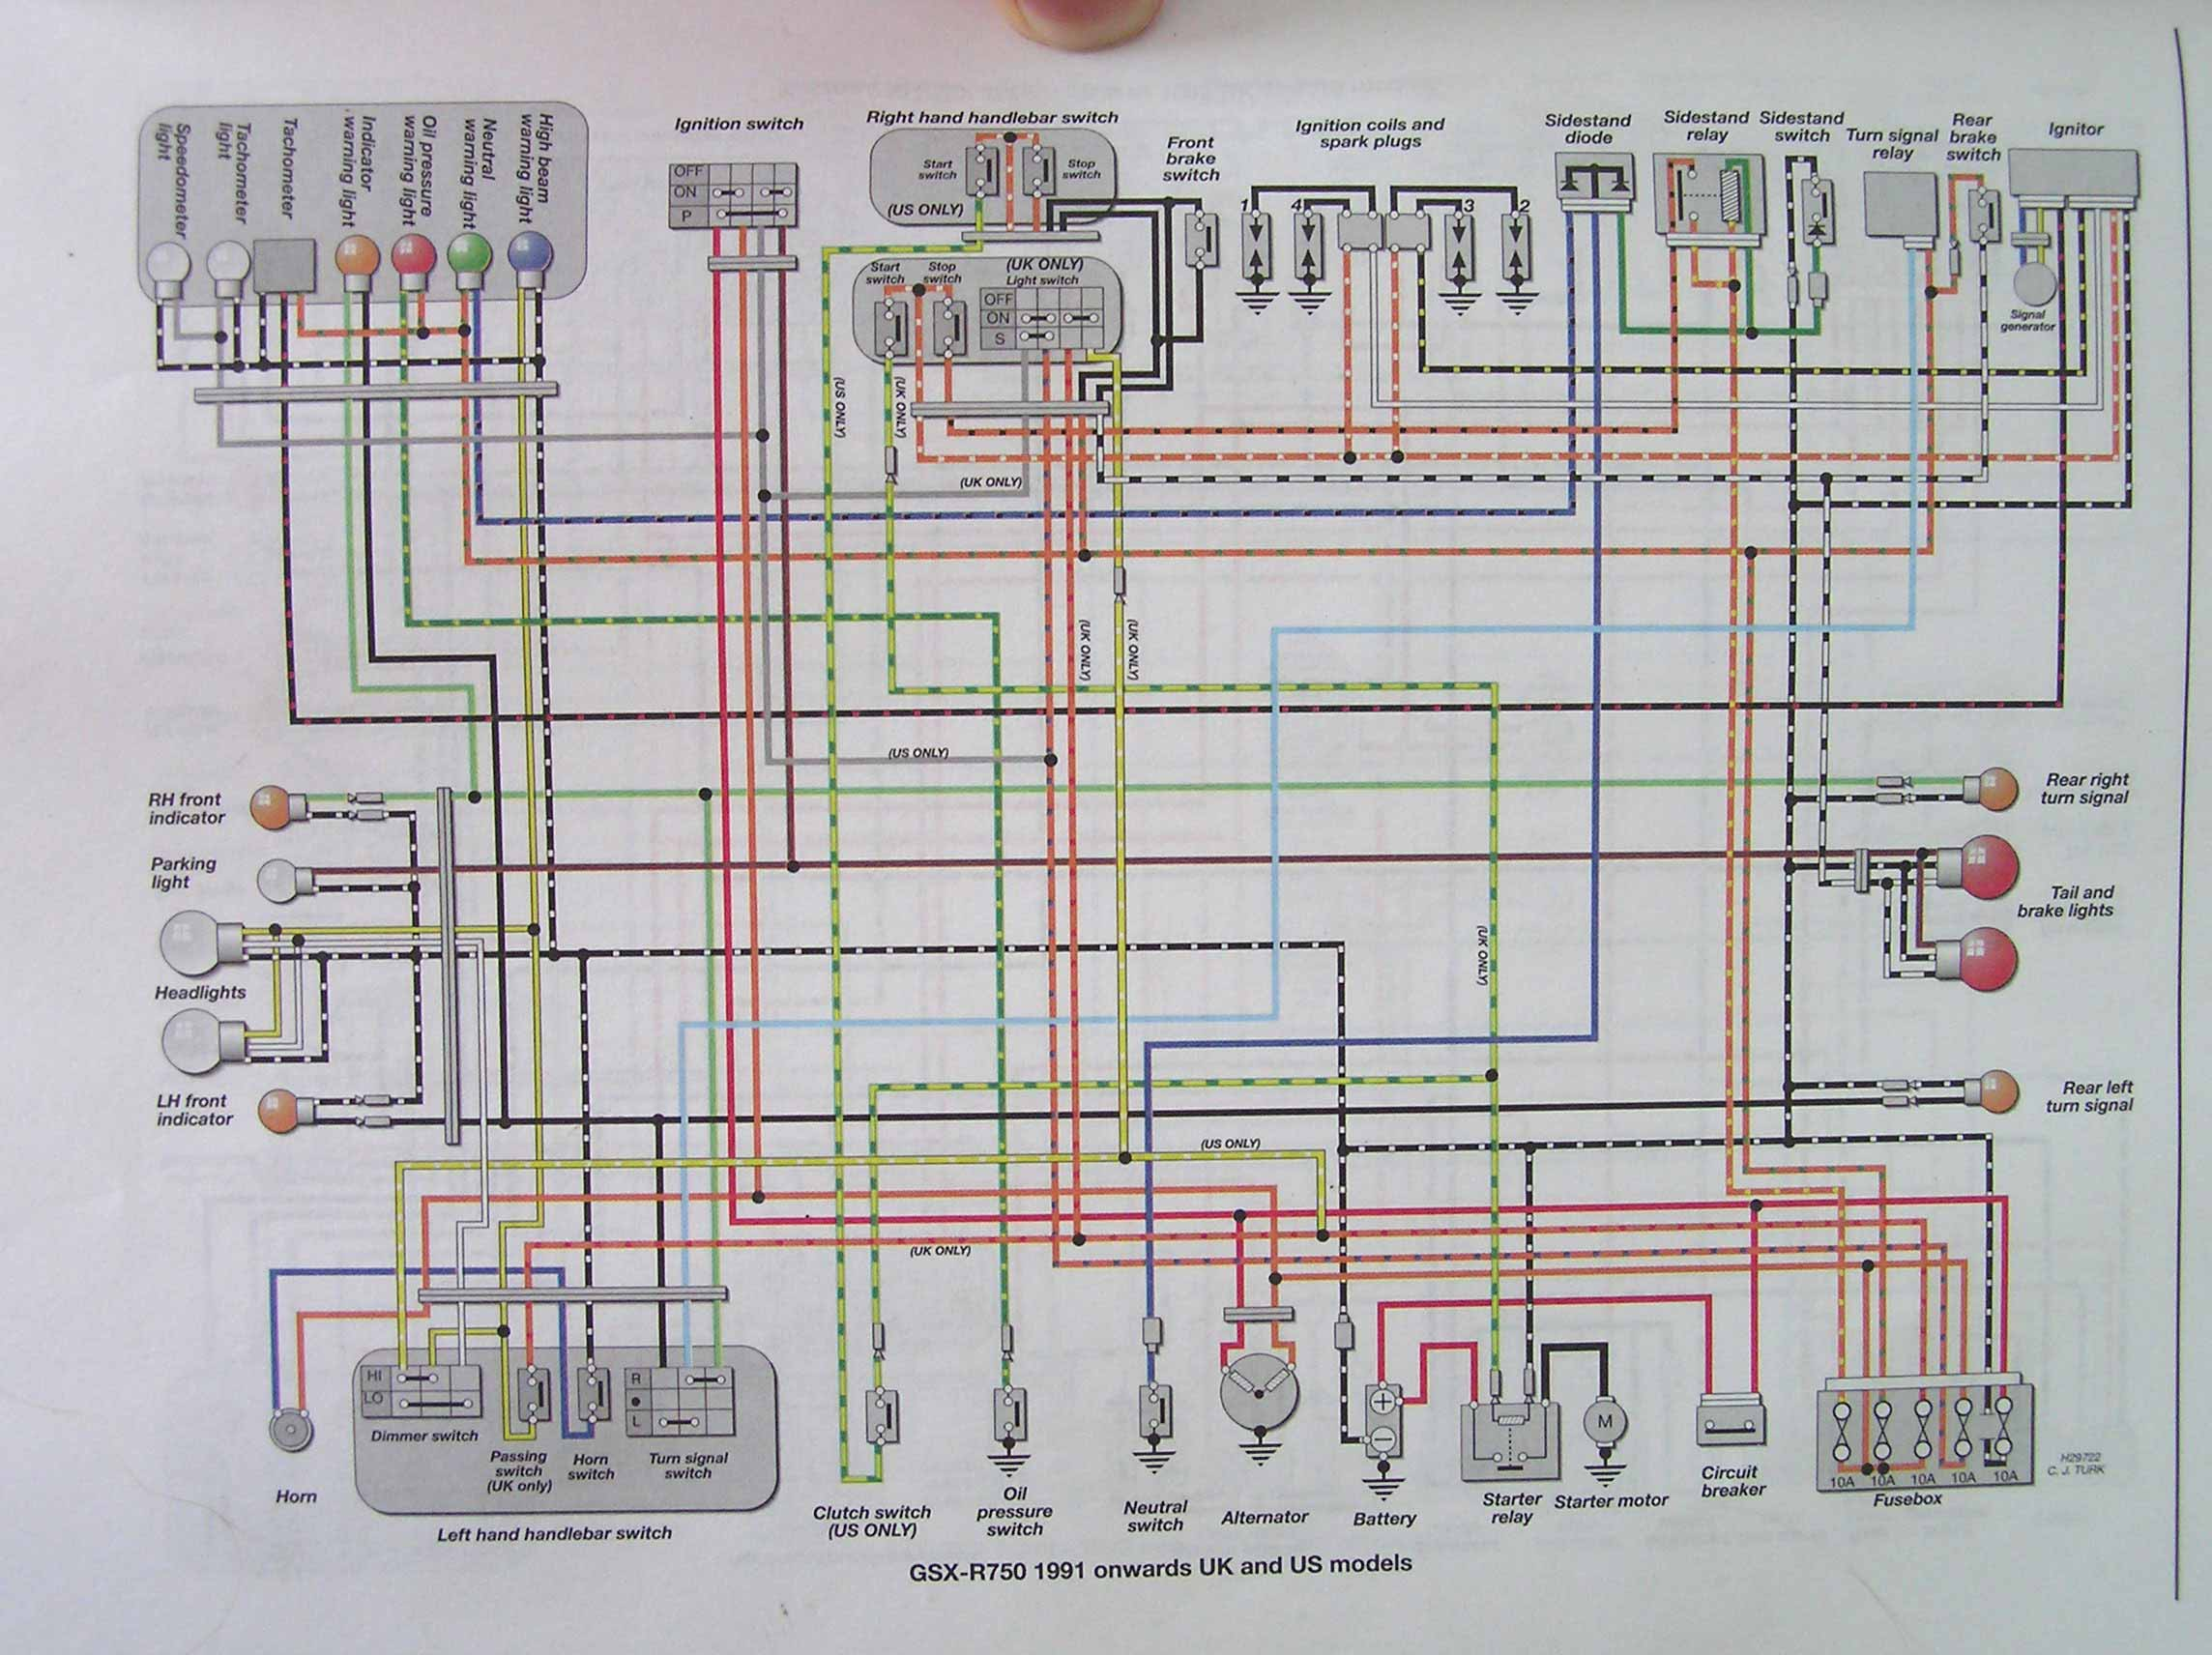 DIAGRAM] Wiring Diagram 2001 Gsxr 600 FULL Version HD Quality Gsxr 600 -  H-RDIAGRAM.HAPPYSCHOOLMILANO.ITWiring And Fuse Image